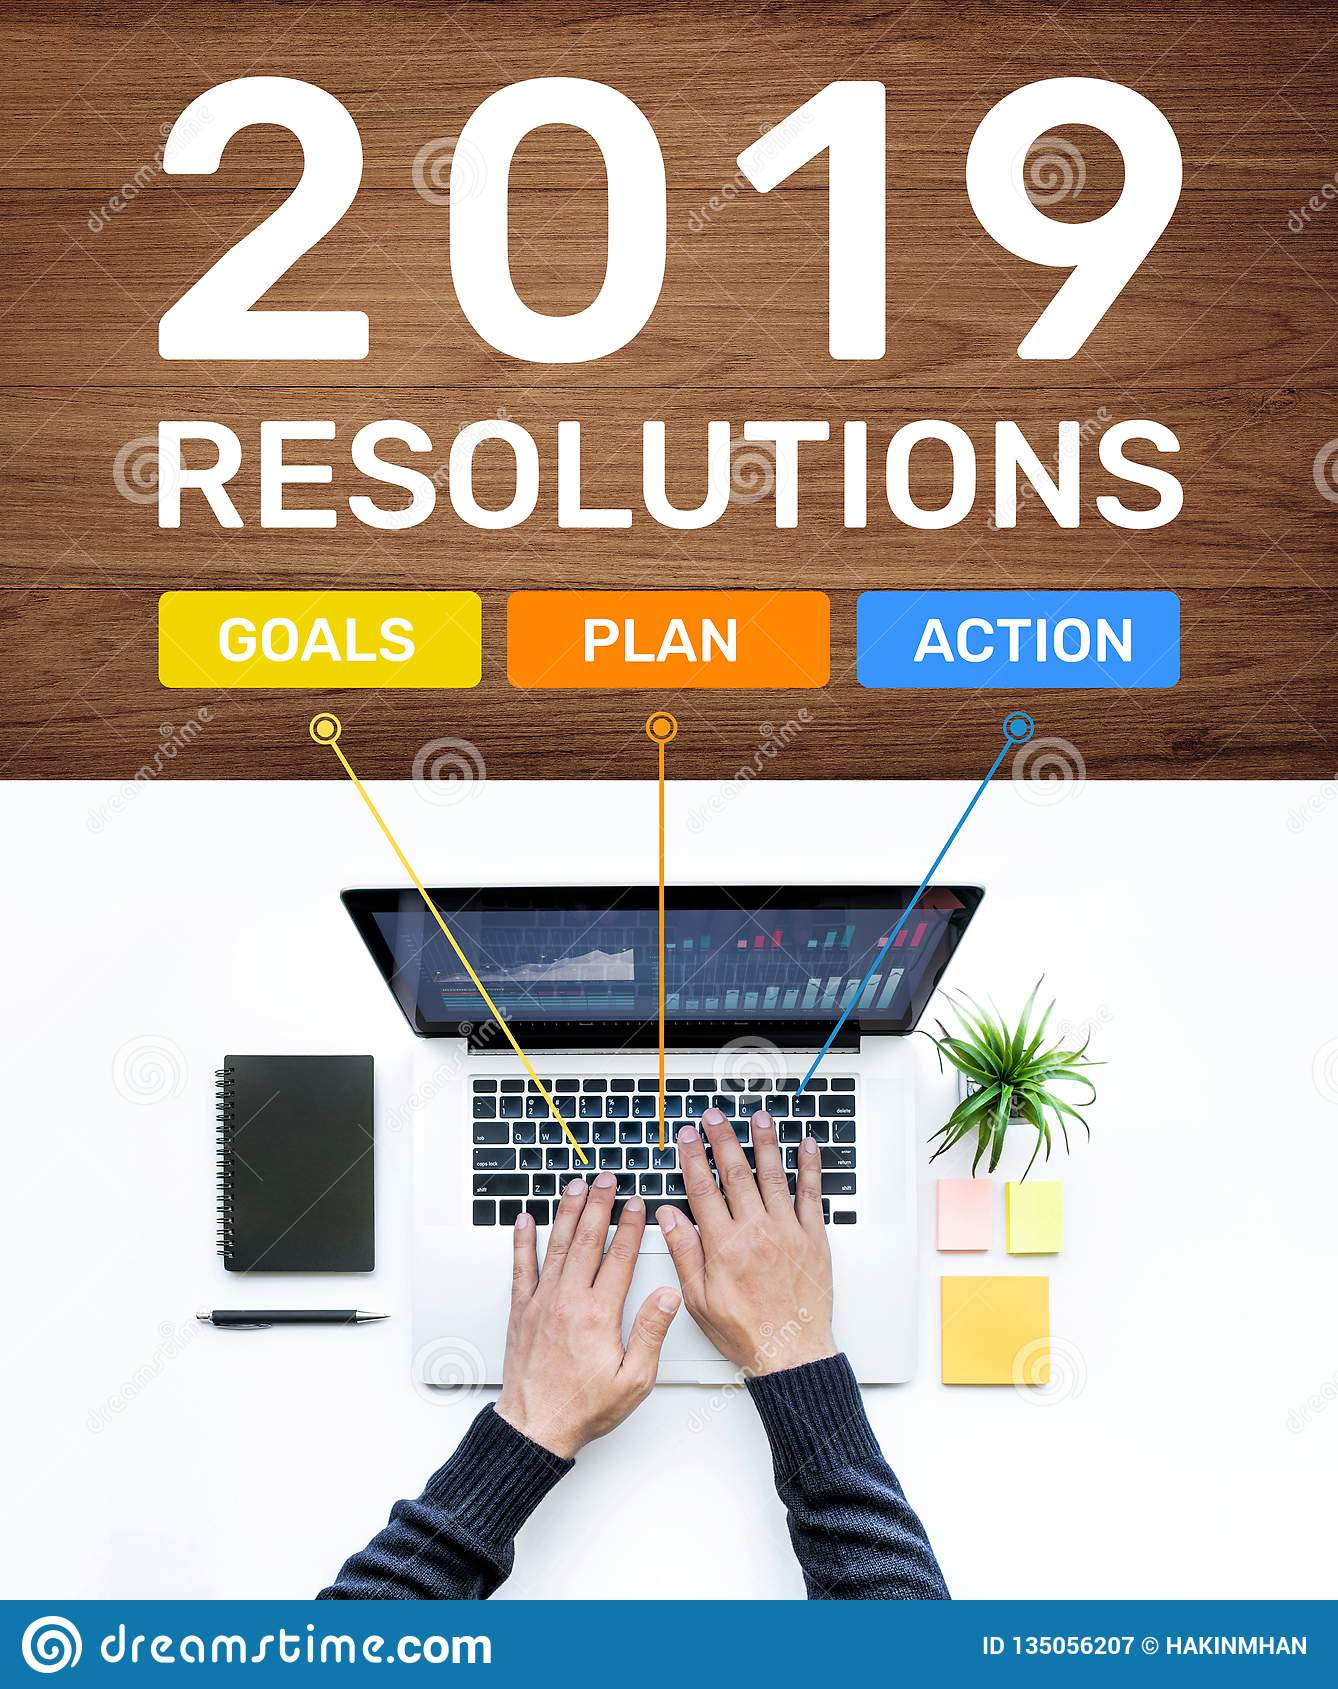 2019 new year resolution concepts with goal,plan,action text and male using computer laptop.Business success ideas